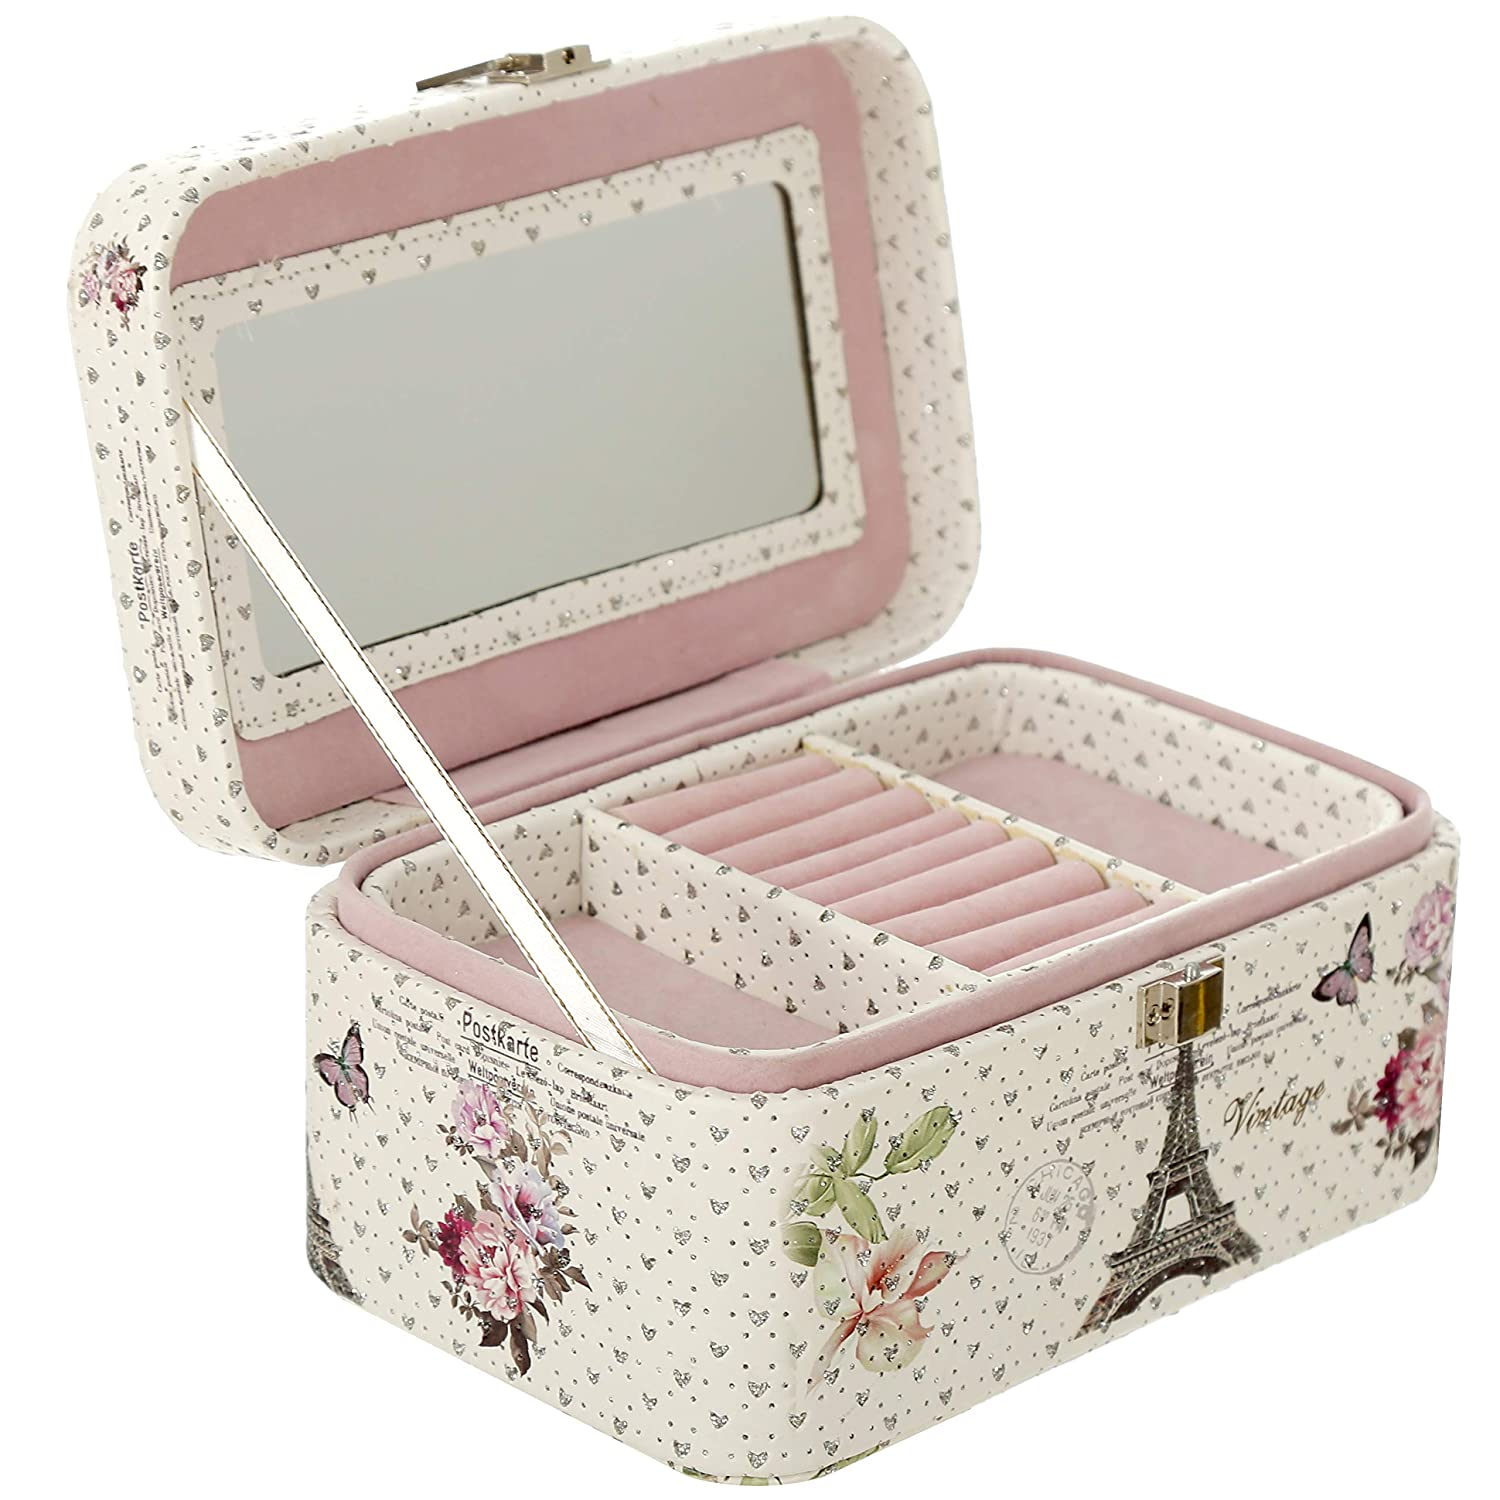 Faux Leather Pink Vintage Parisian Design Jewelry Organizer Box with Mirror MyGift